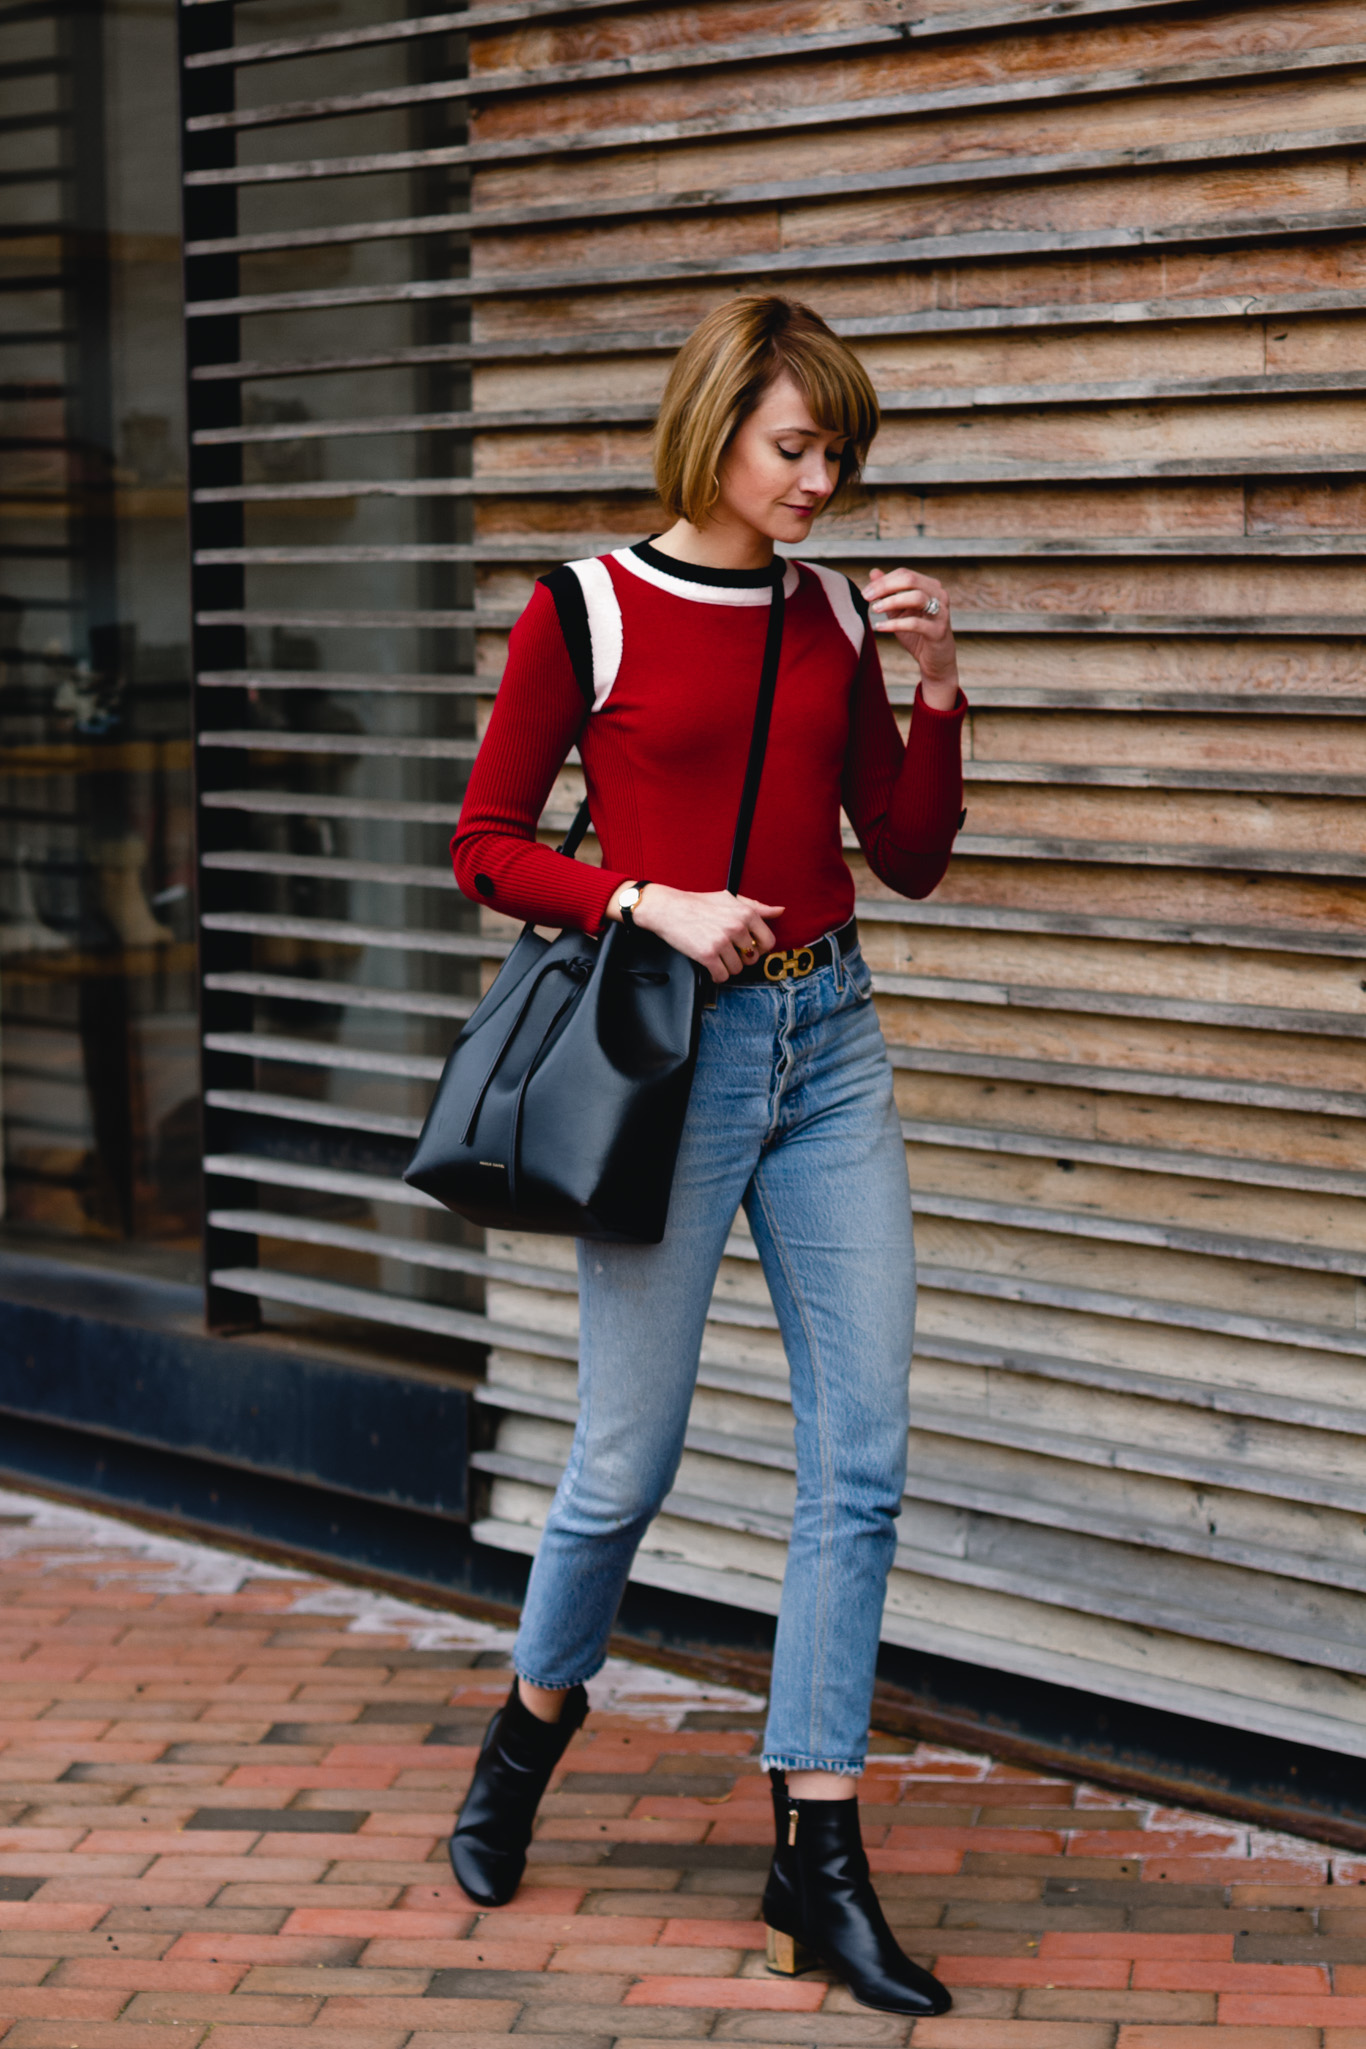 Marni sweater, RE/DONE jeans, and Mansur Gavriel bag